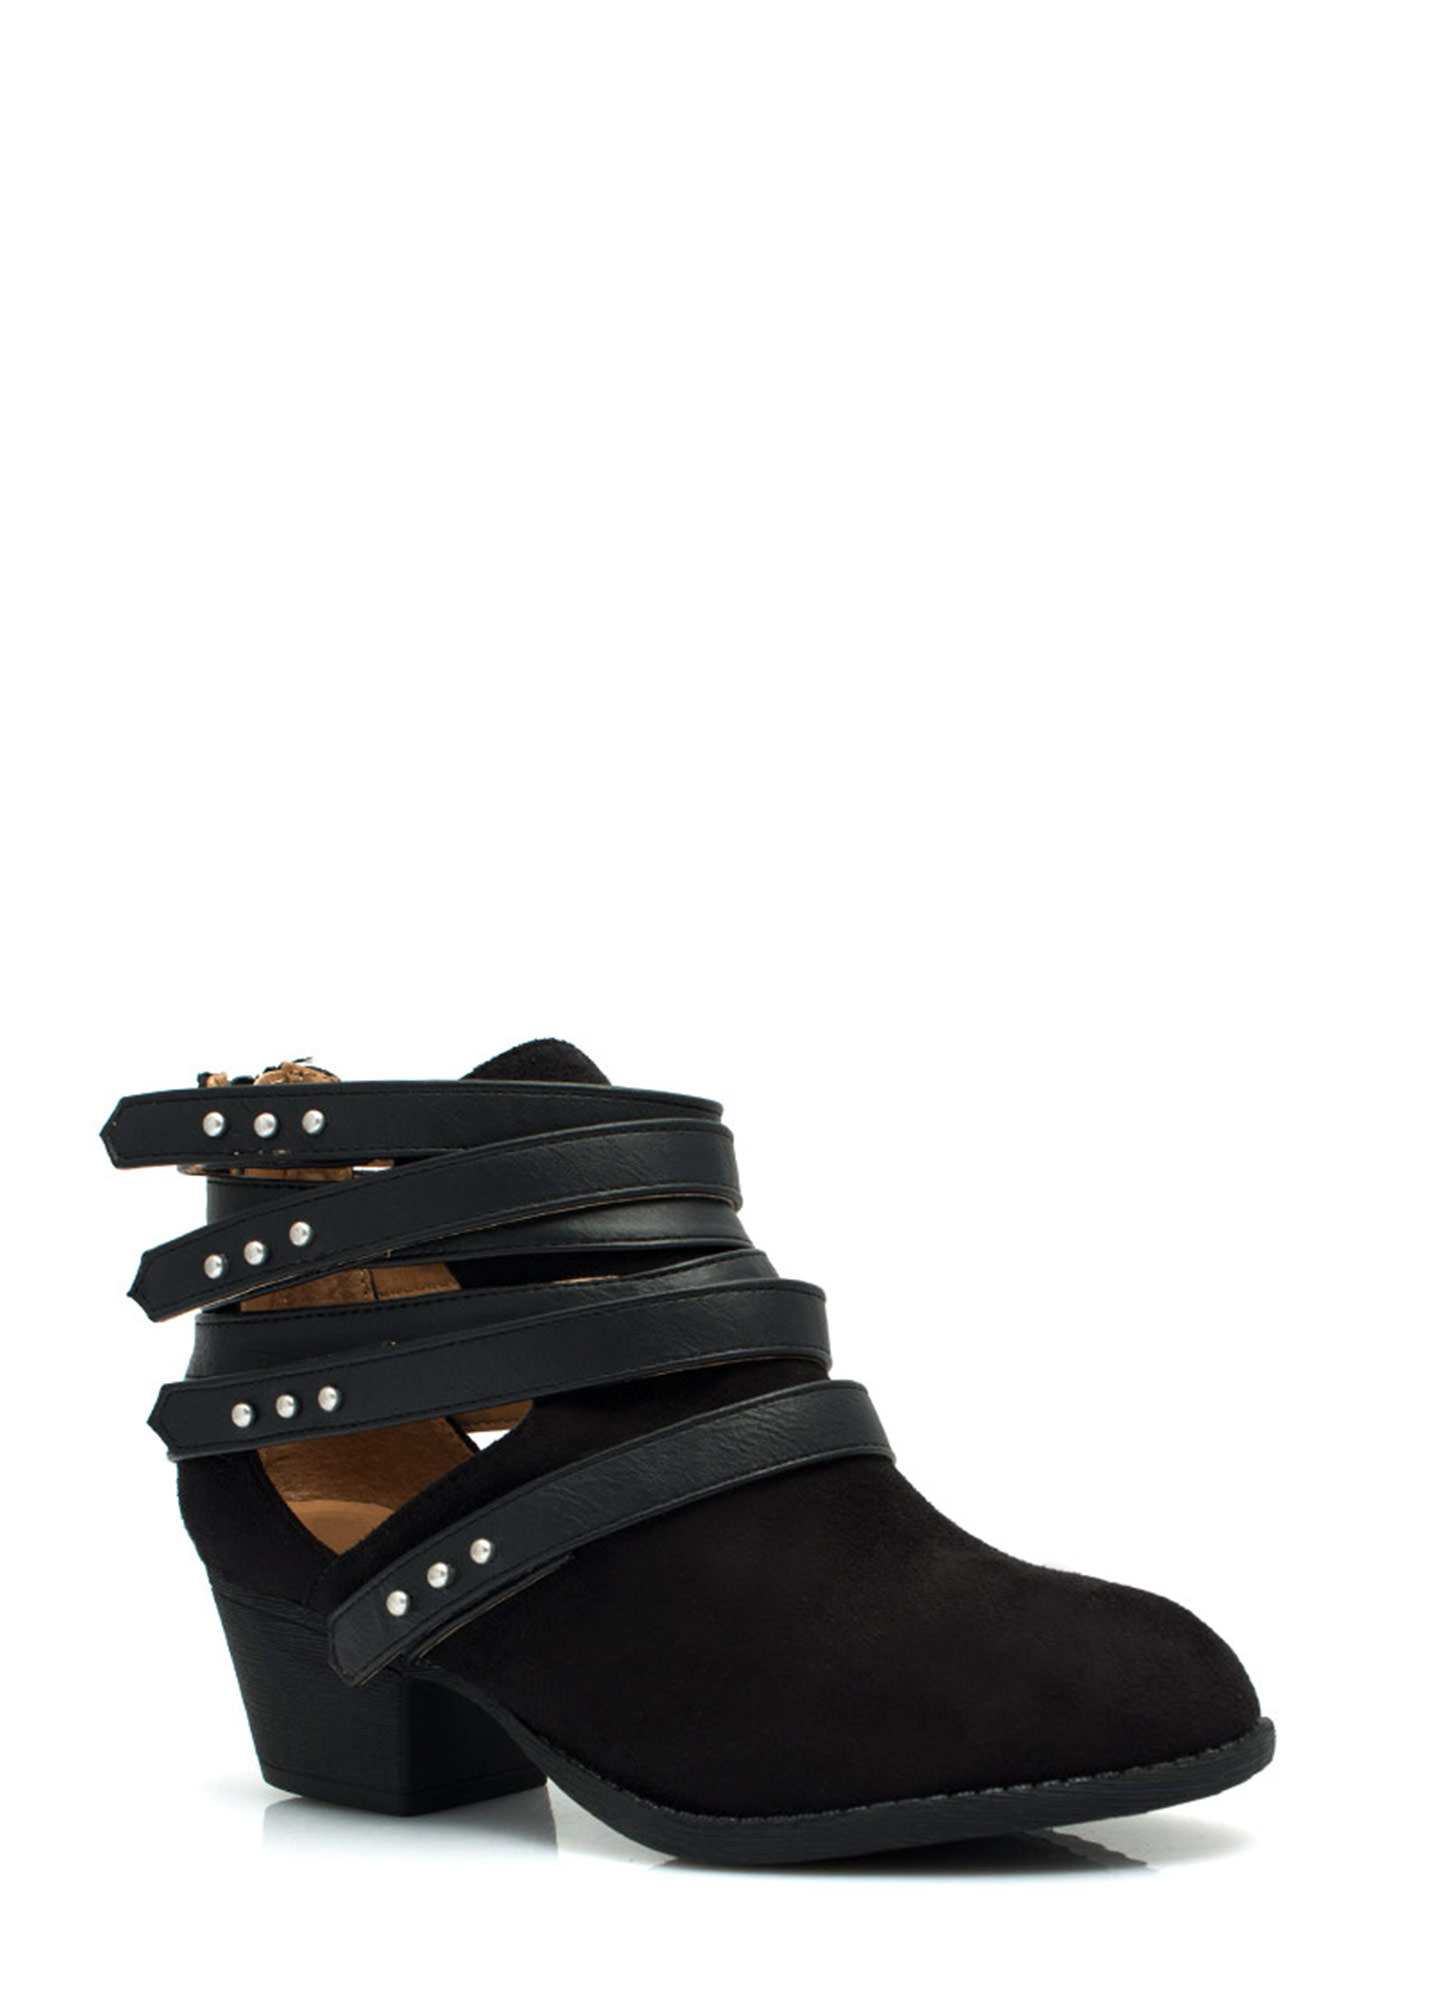 Strap Happy Studded Booties BLACK